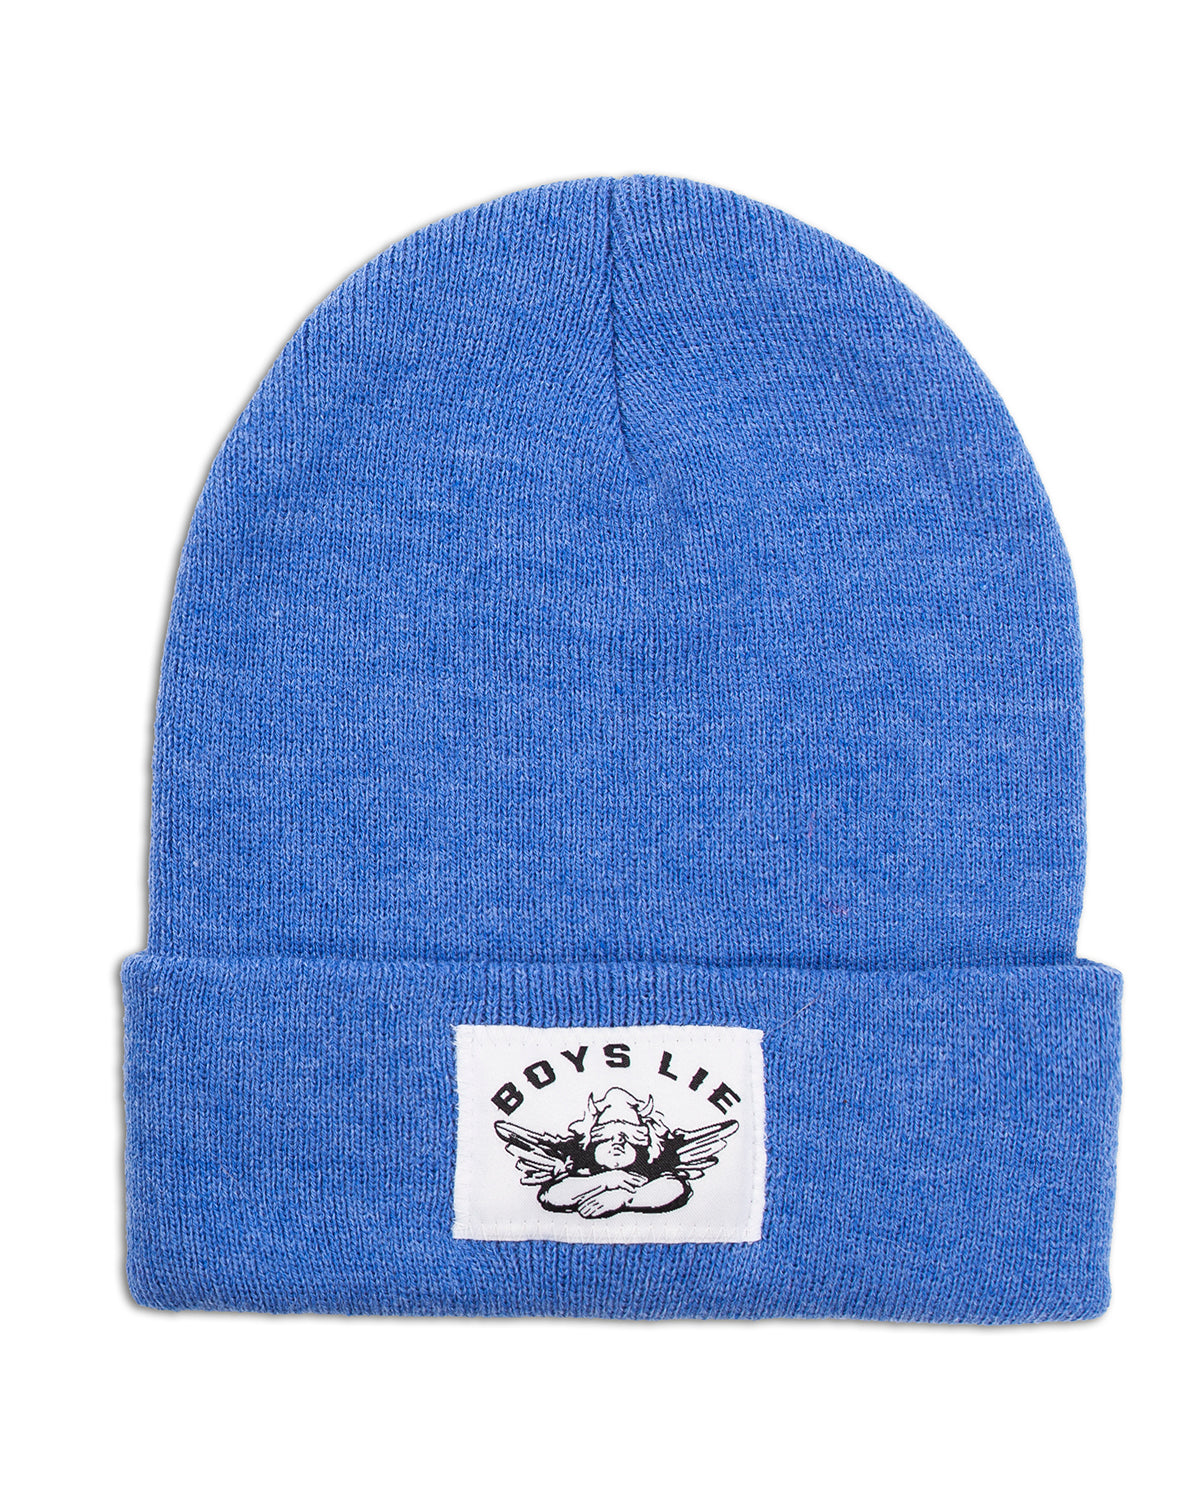 BOYS LIE BLUE BEANIE